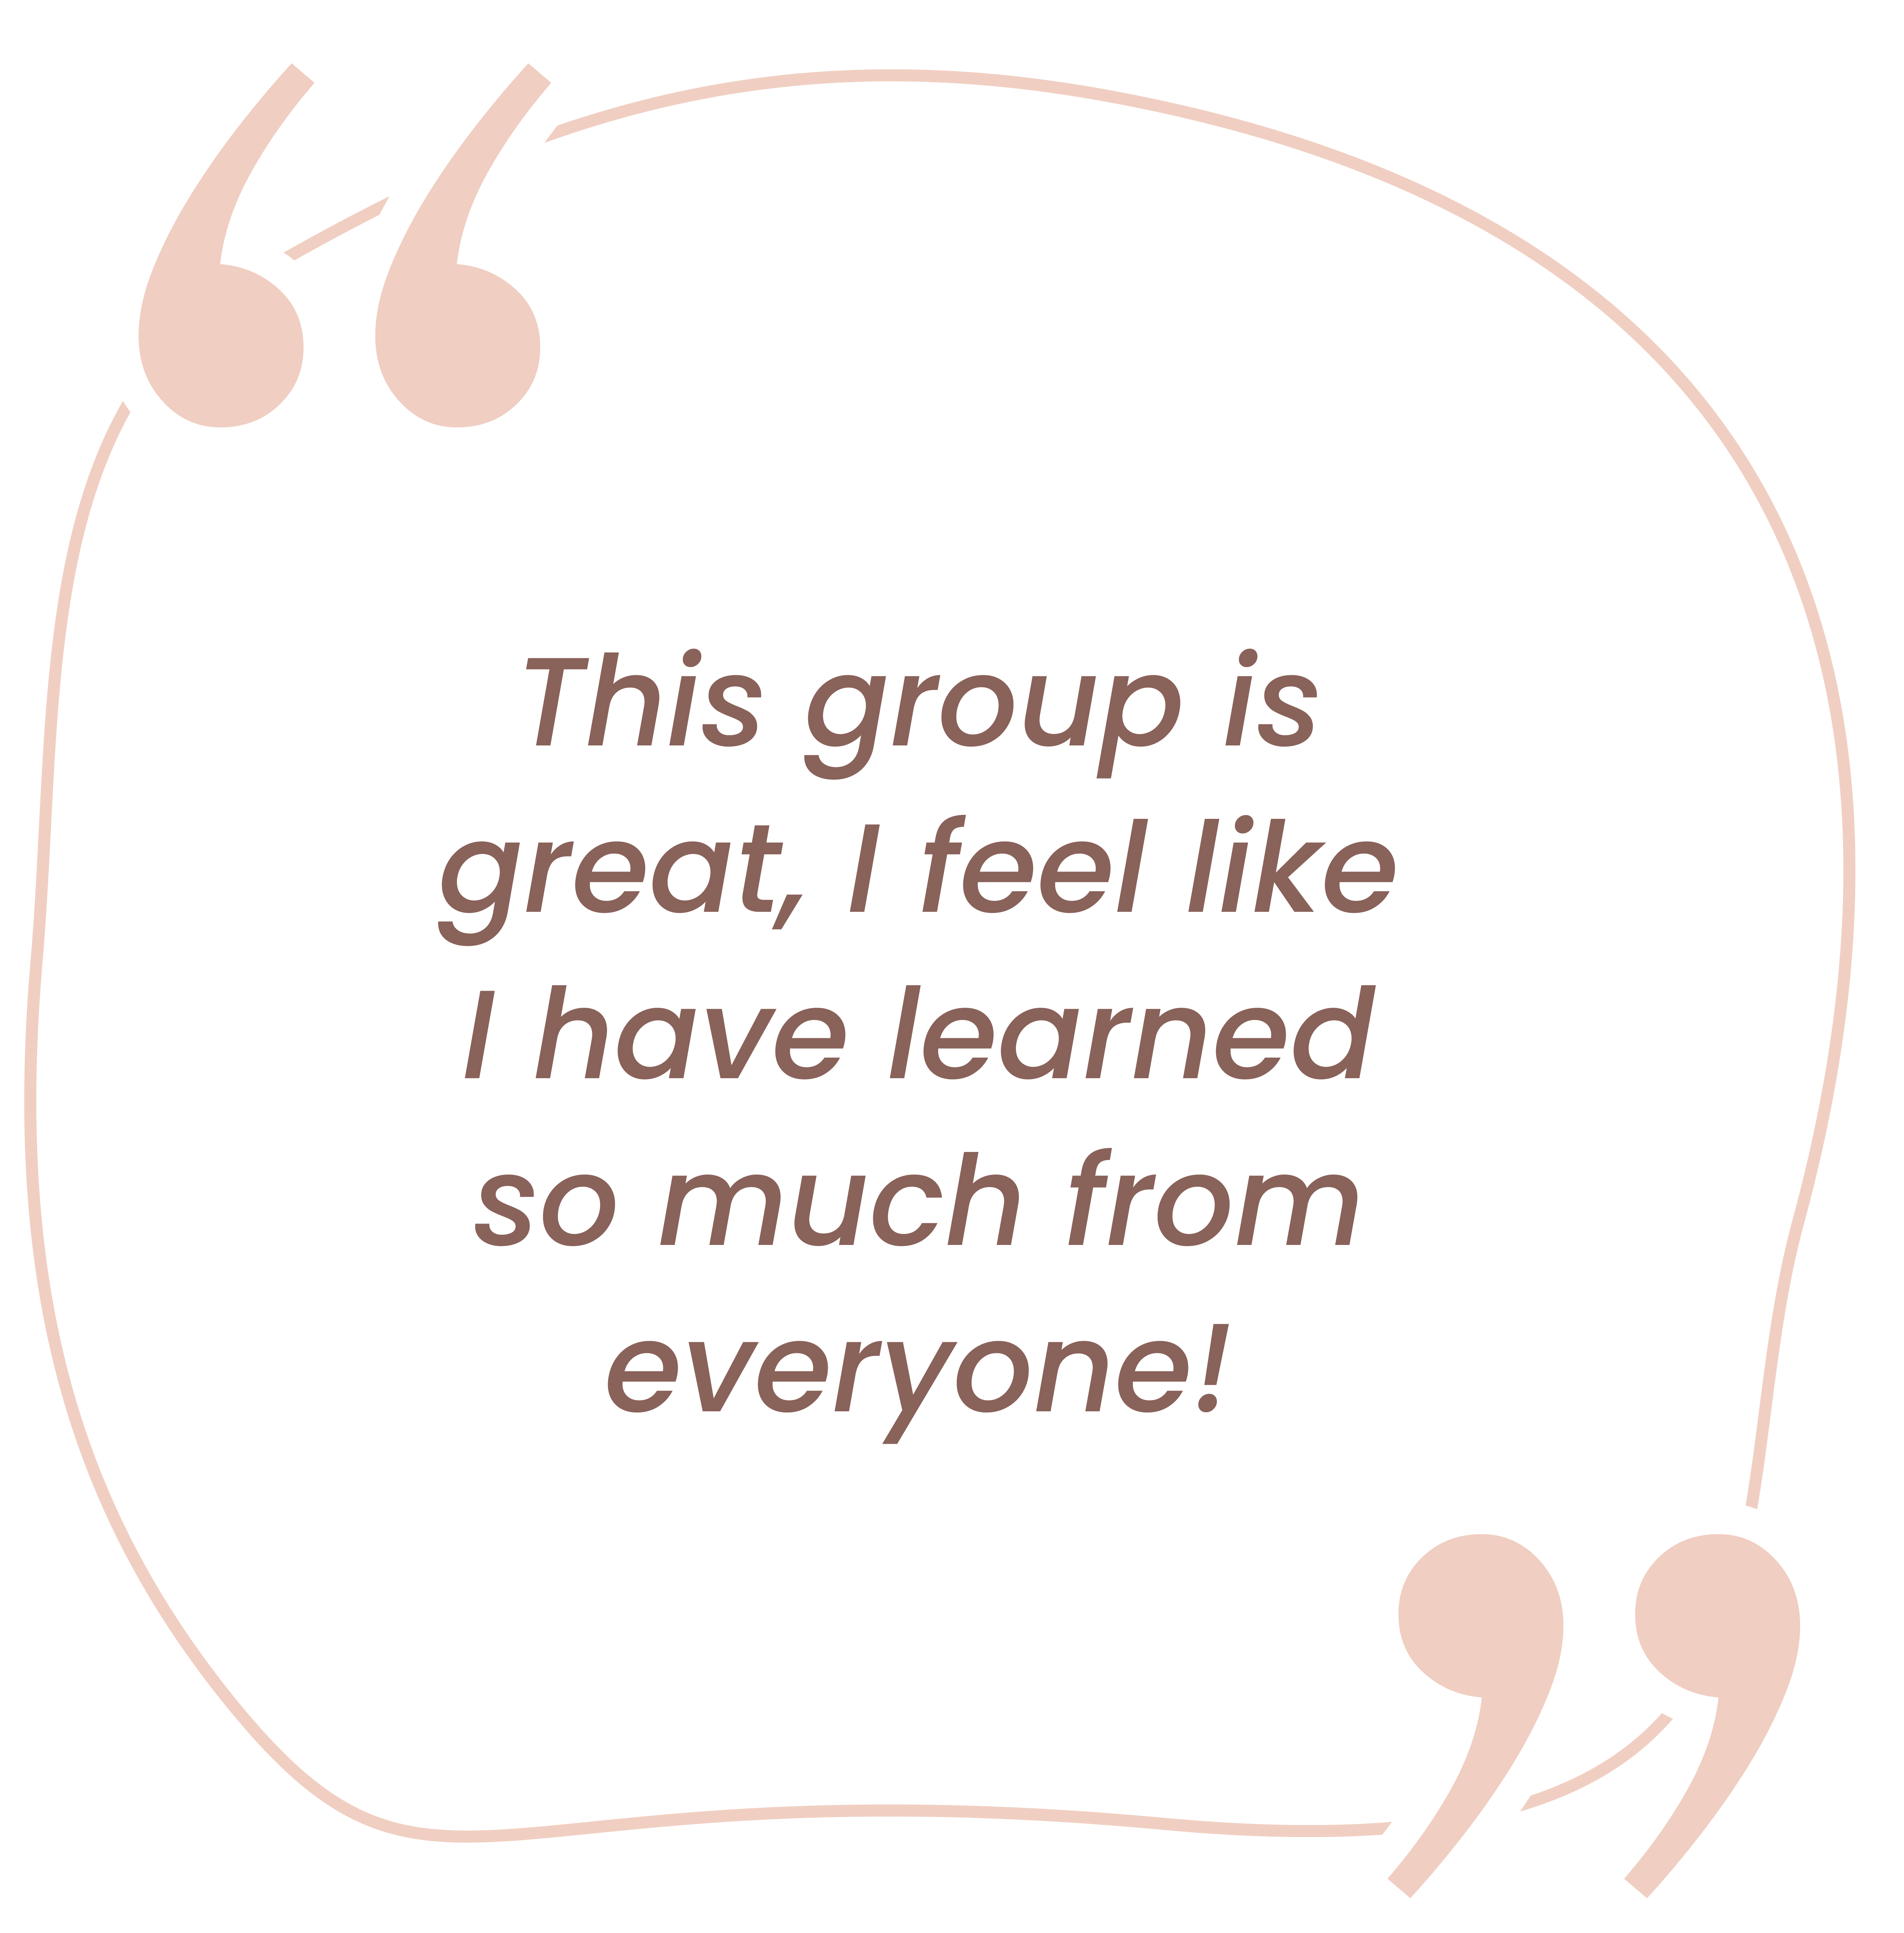 narcissistic abuse recovery group Testimonial